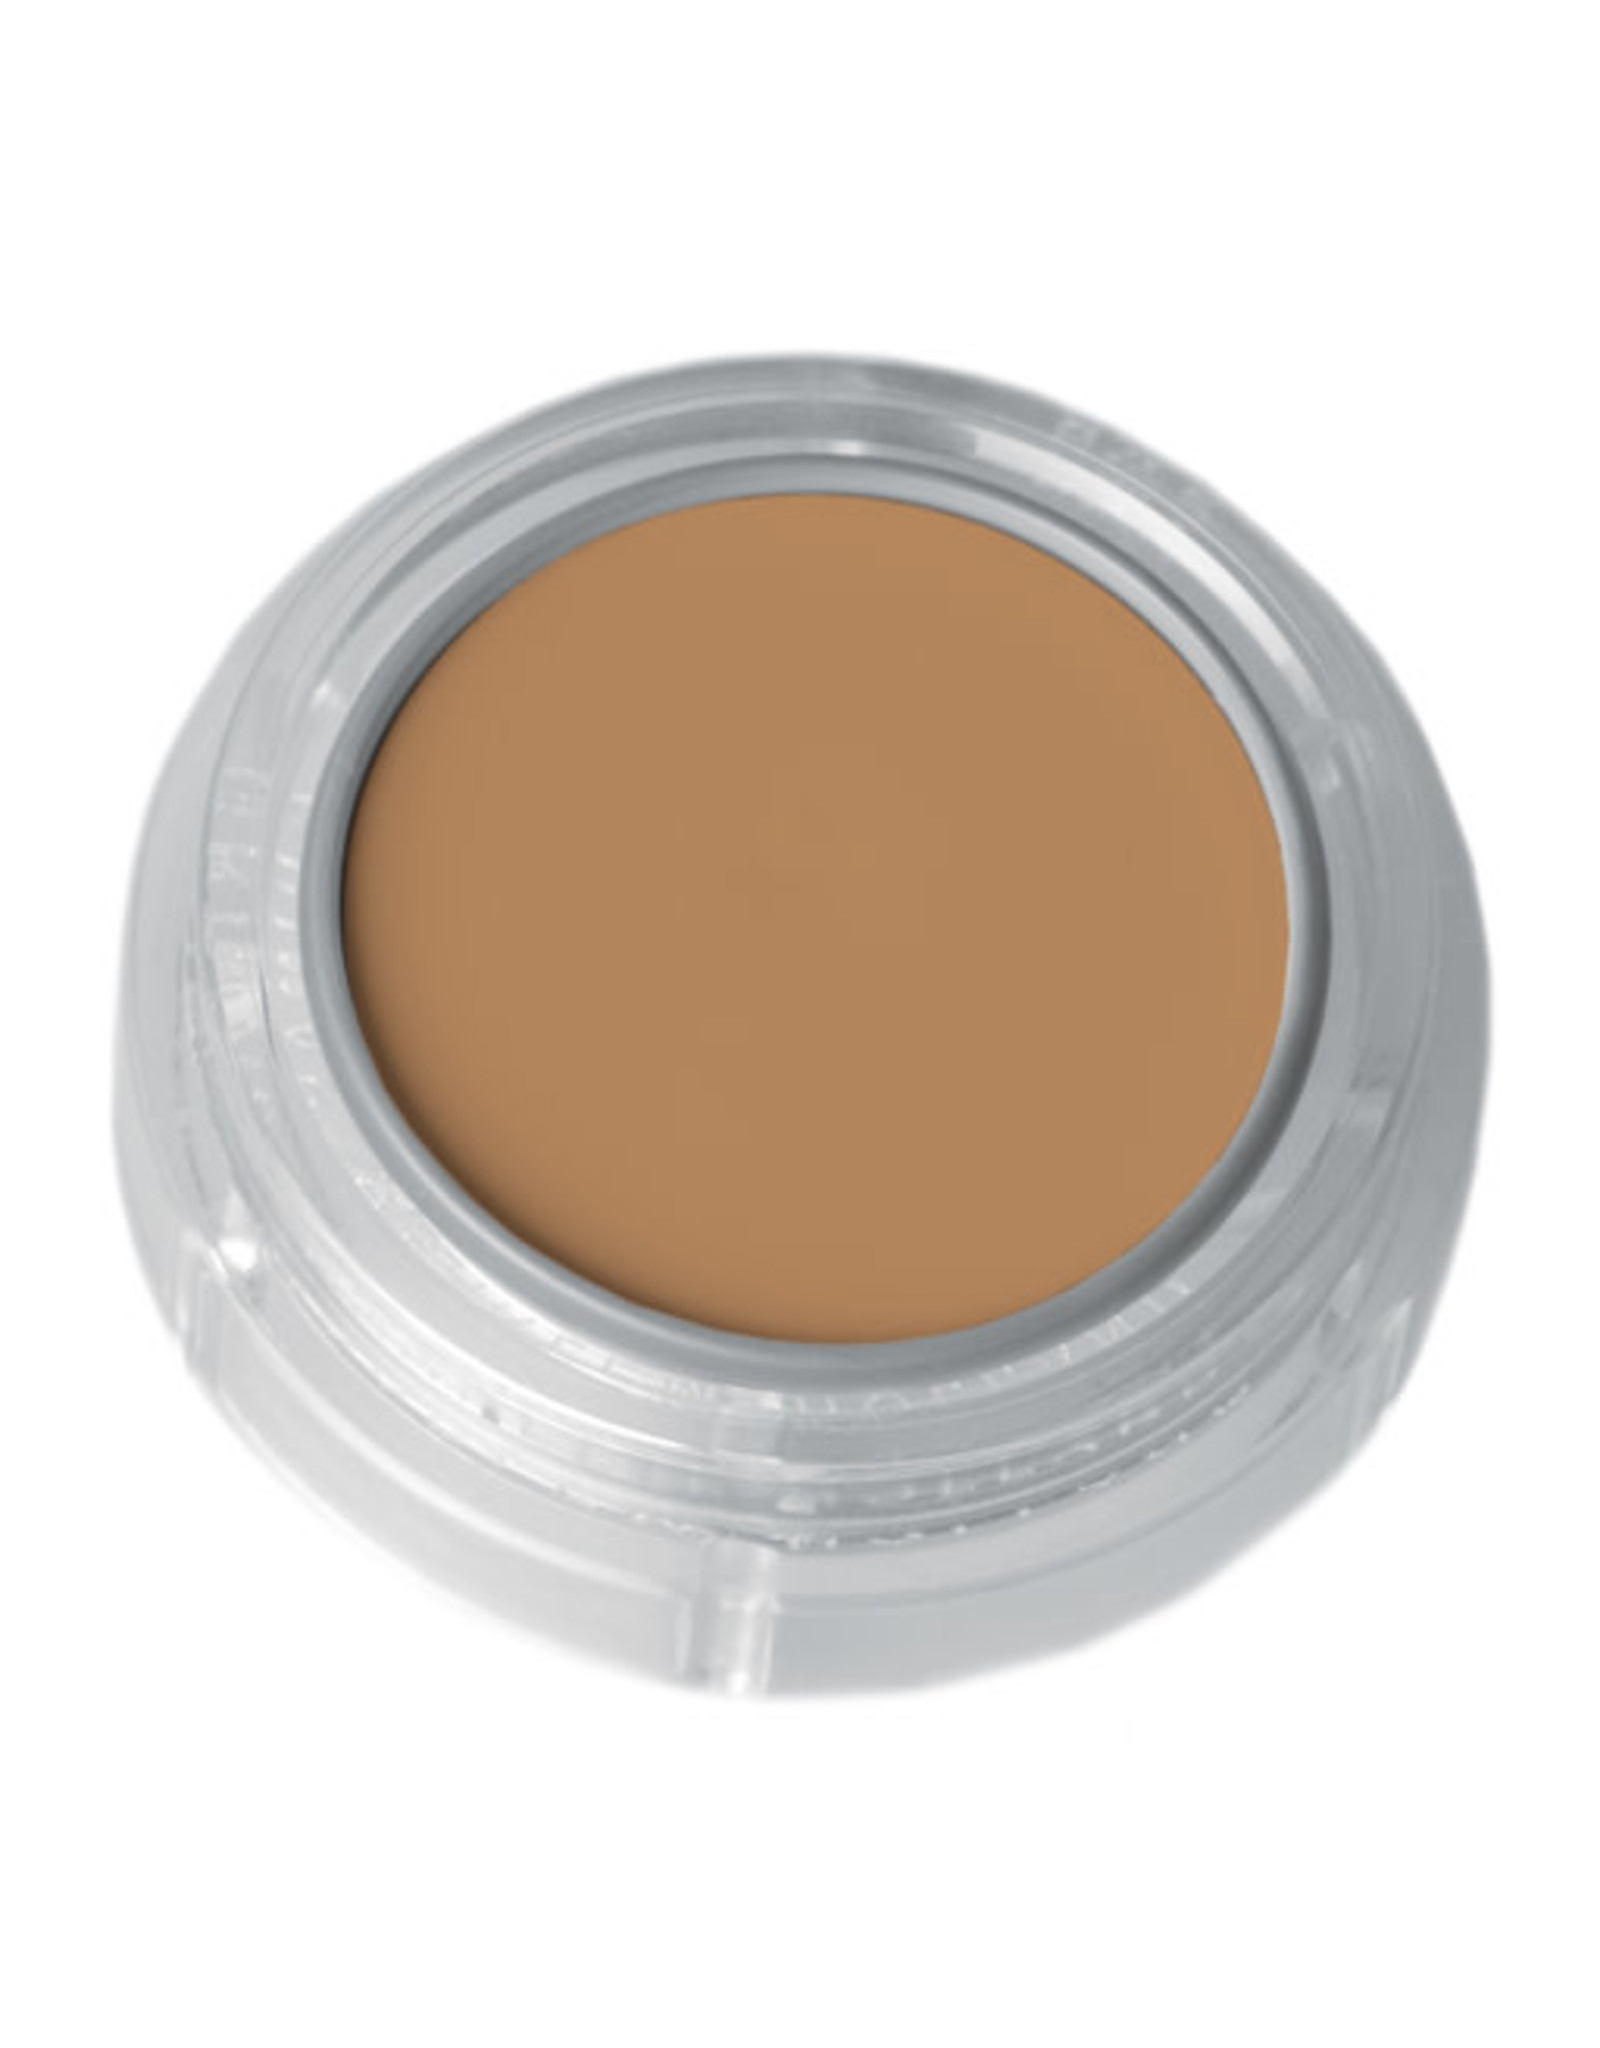 Grimas CAMOUFLAGE MAKE-UP PURE B4 Beige 4 A1 (2,5 ml)